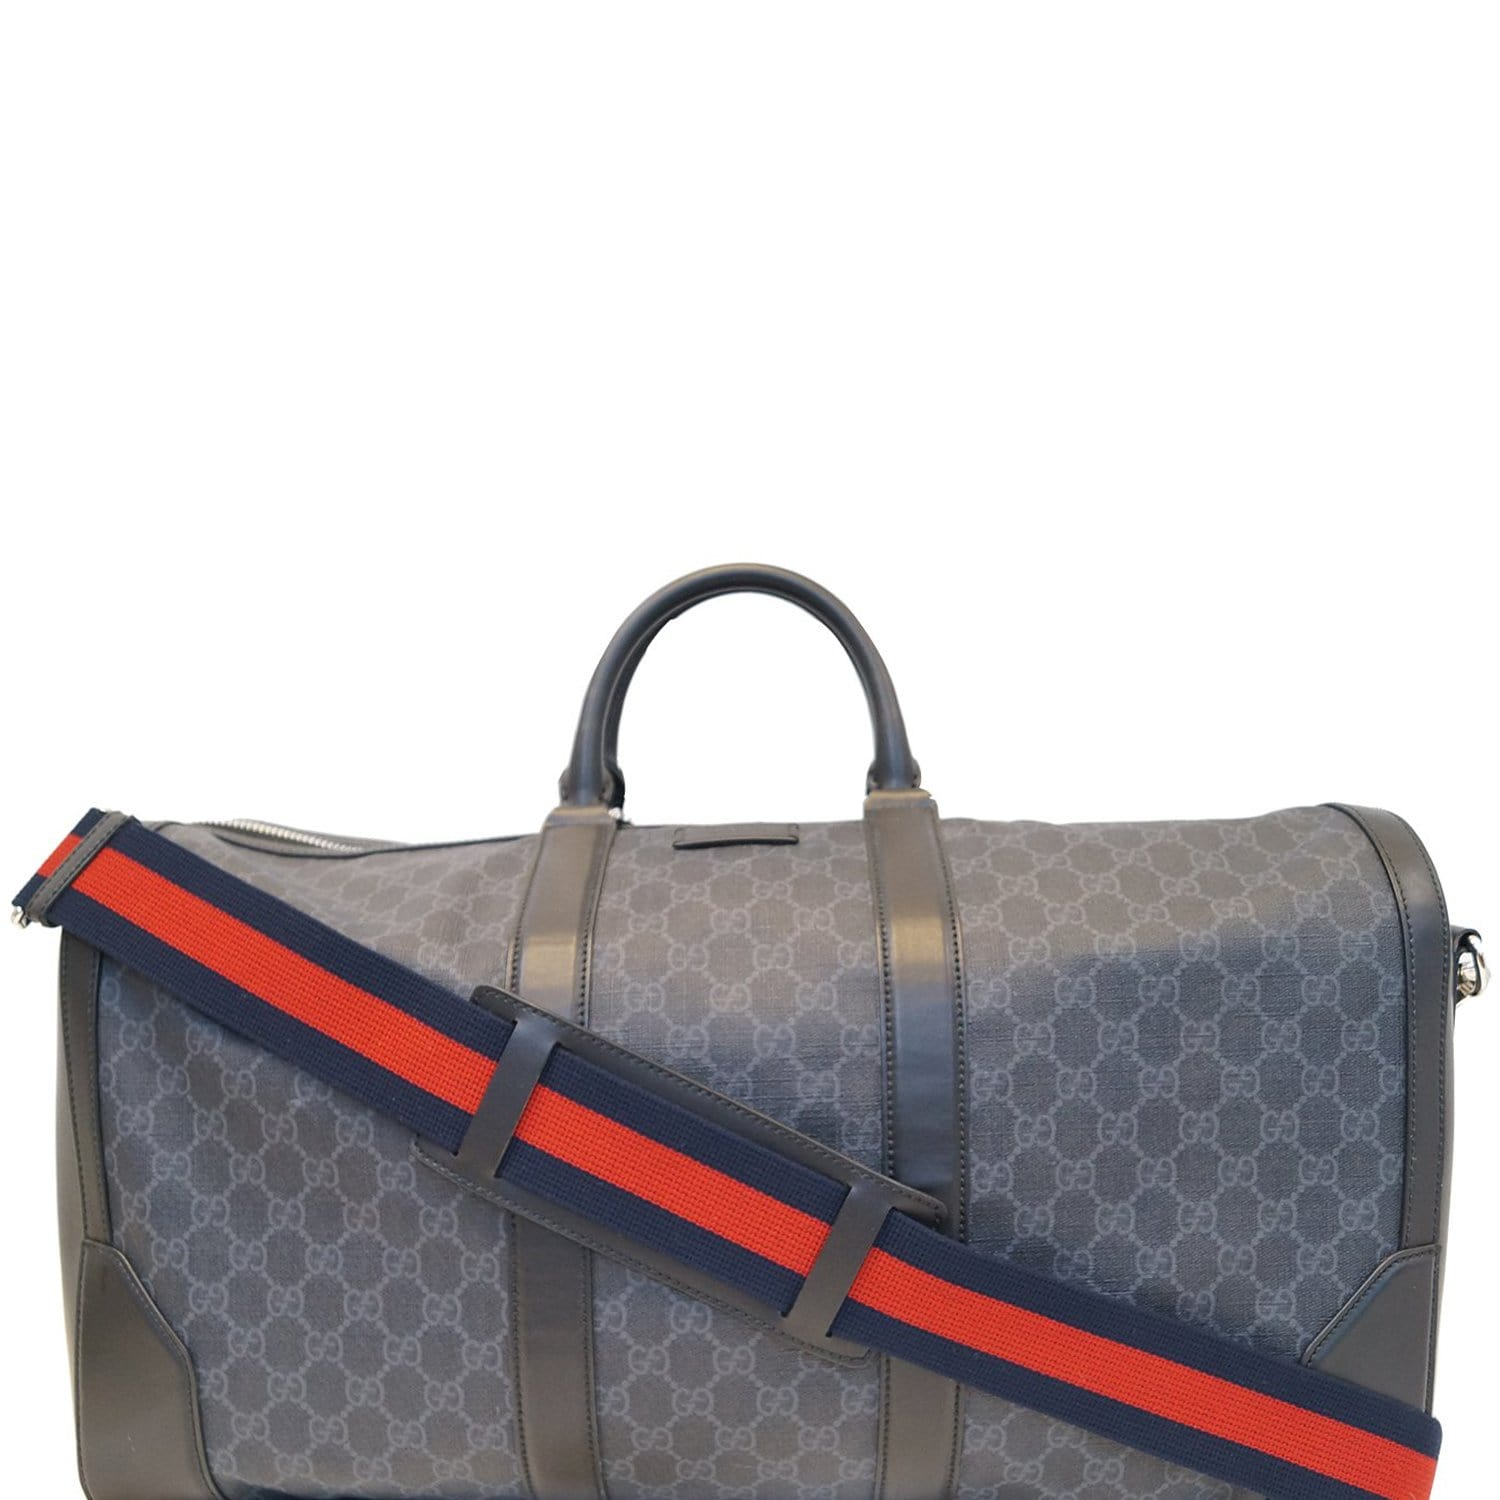 7a094c54fb3f6f GUCCI Black Soft GG Supreme carry-on Duffle Travel Bag 478323